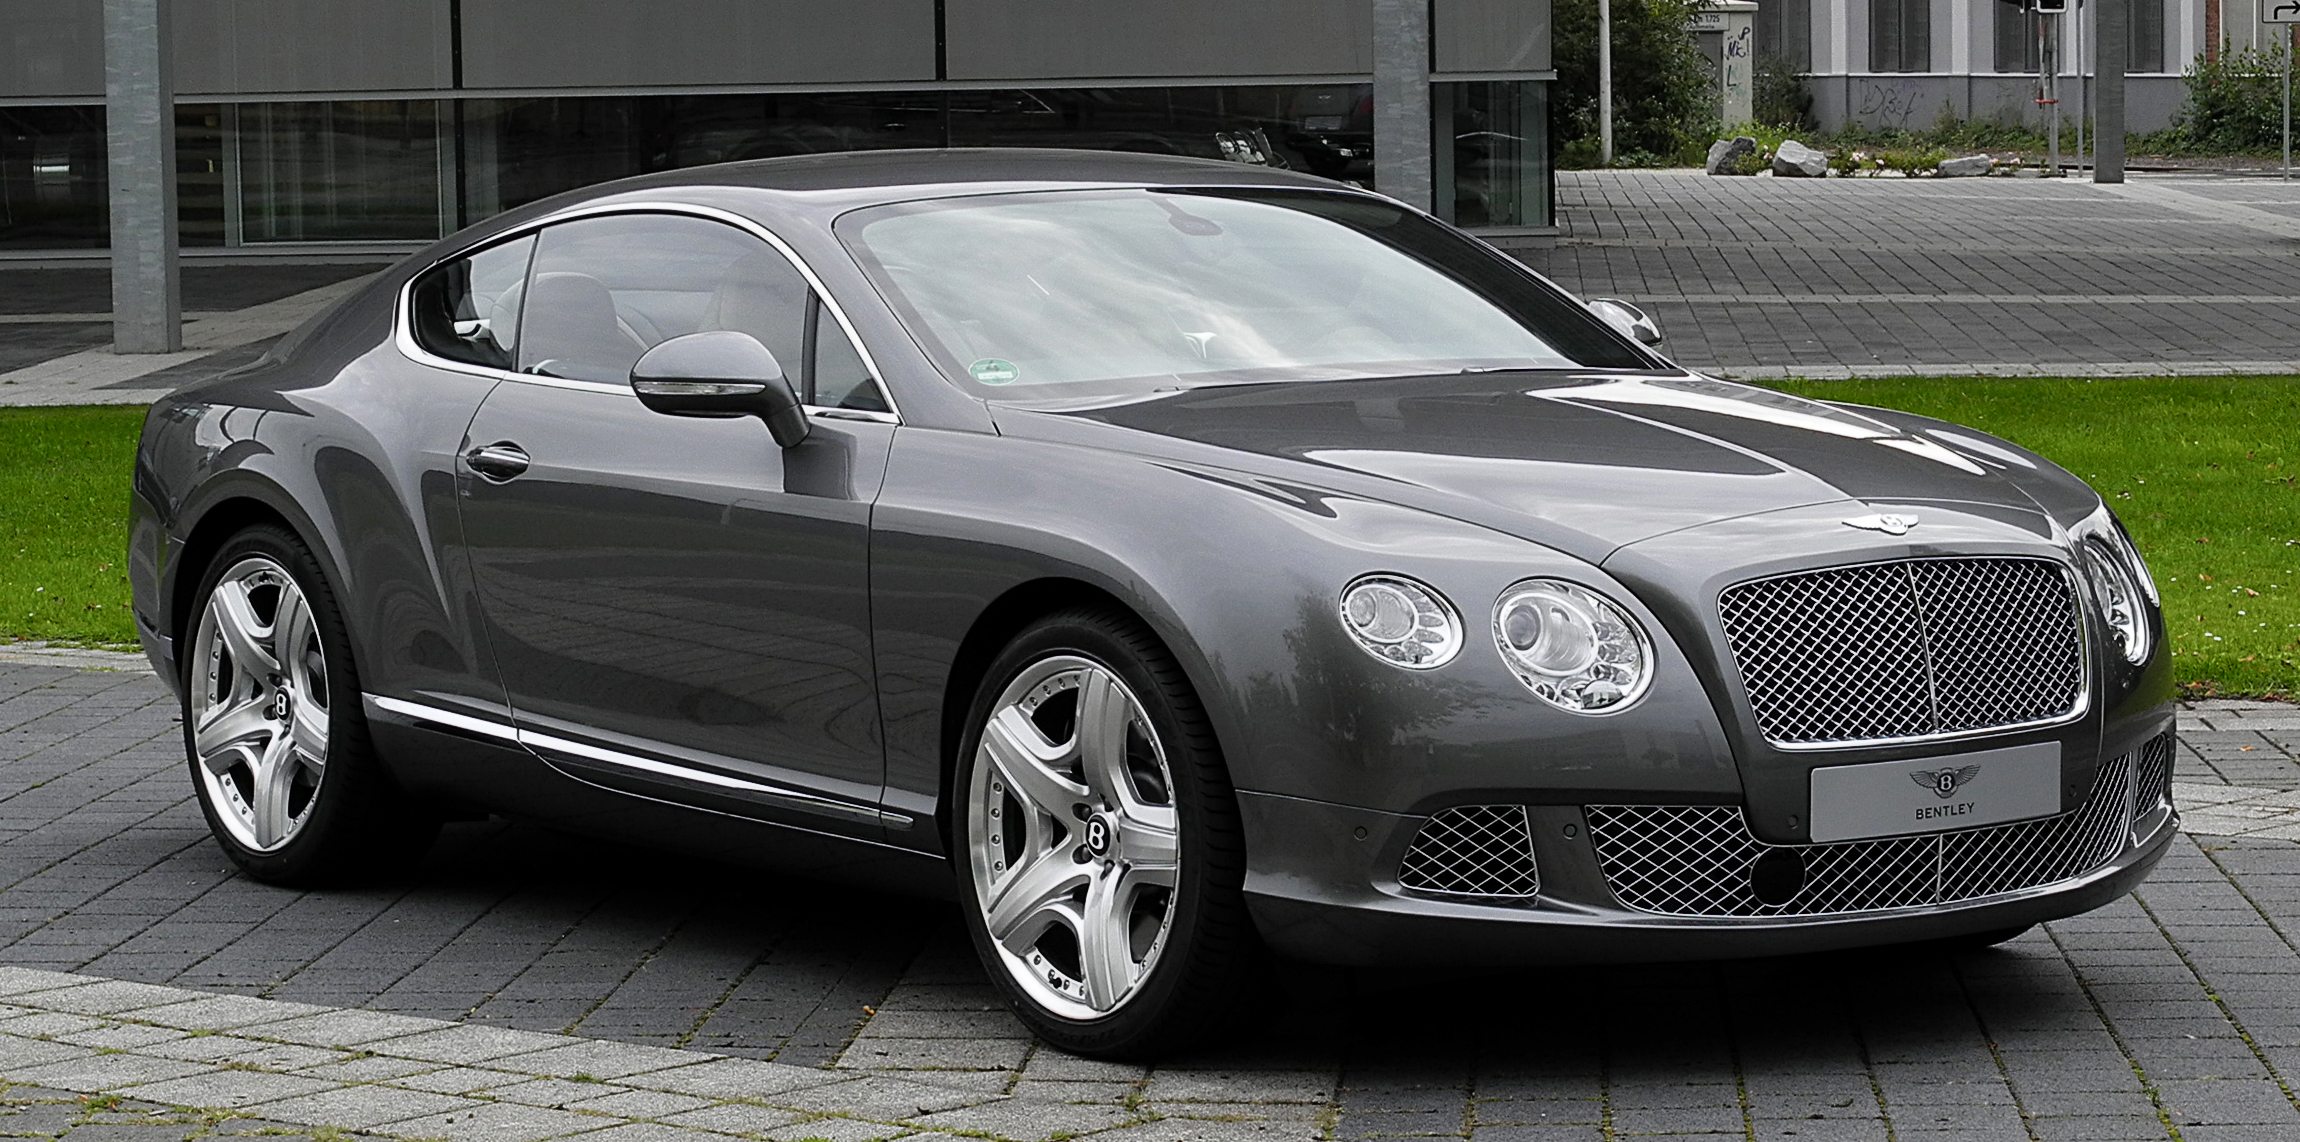 Bentley Continental - Wikiwand